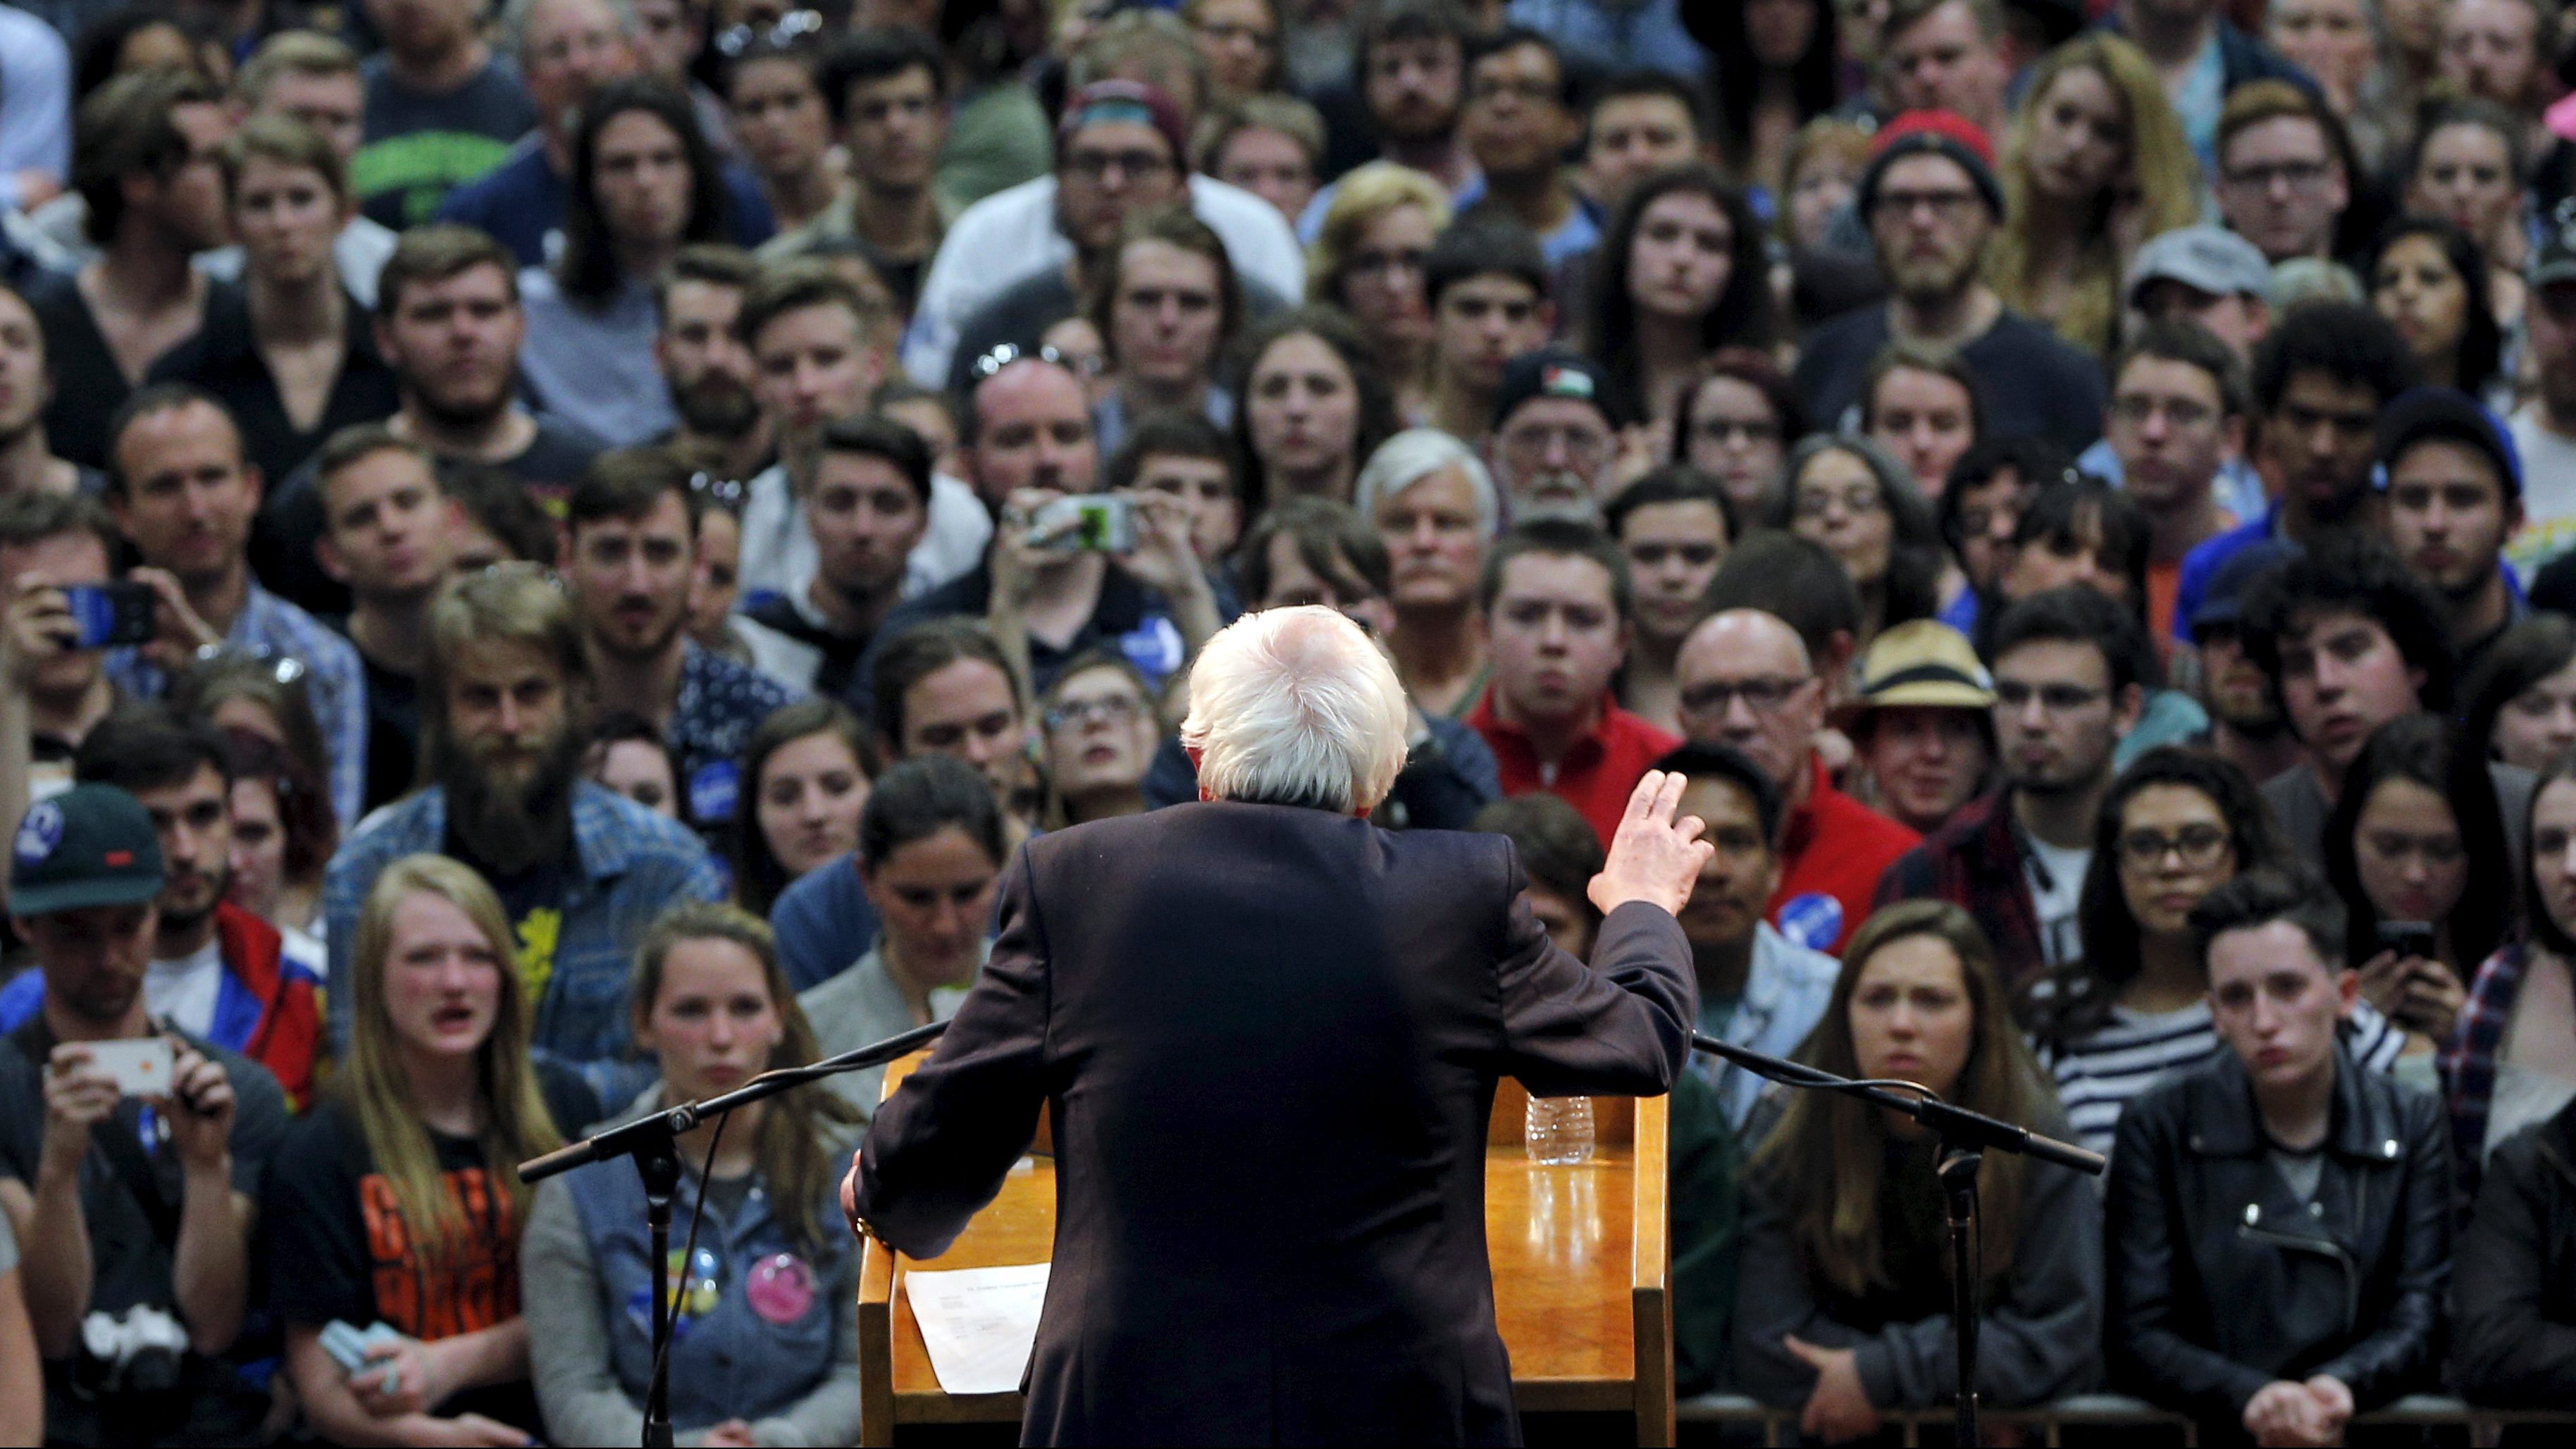 U.S. Democratic presidential candidate and U.S. Senator Bernie Sanders speaks at a campaign rally in Fort Collins, Colorado February 28, 2016.    TPX IMAGES OF THE DAY      - RTS8GEV